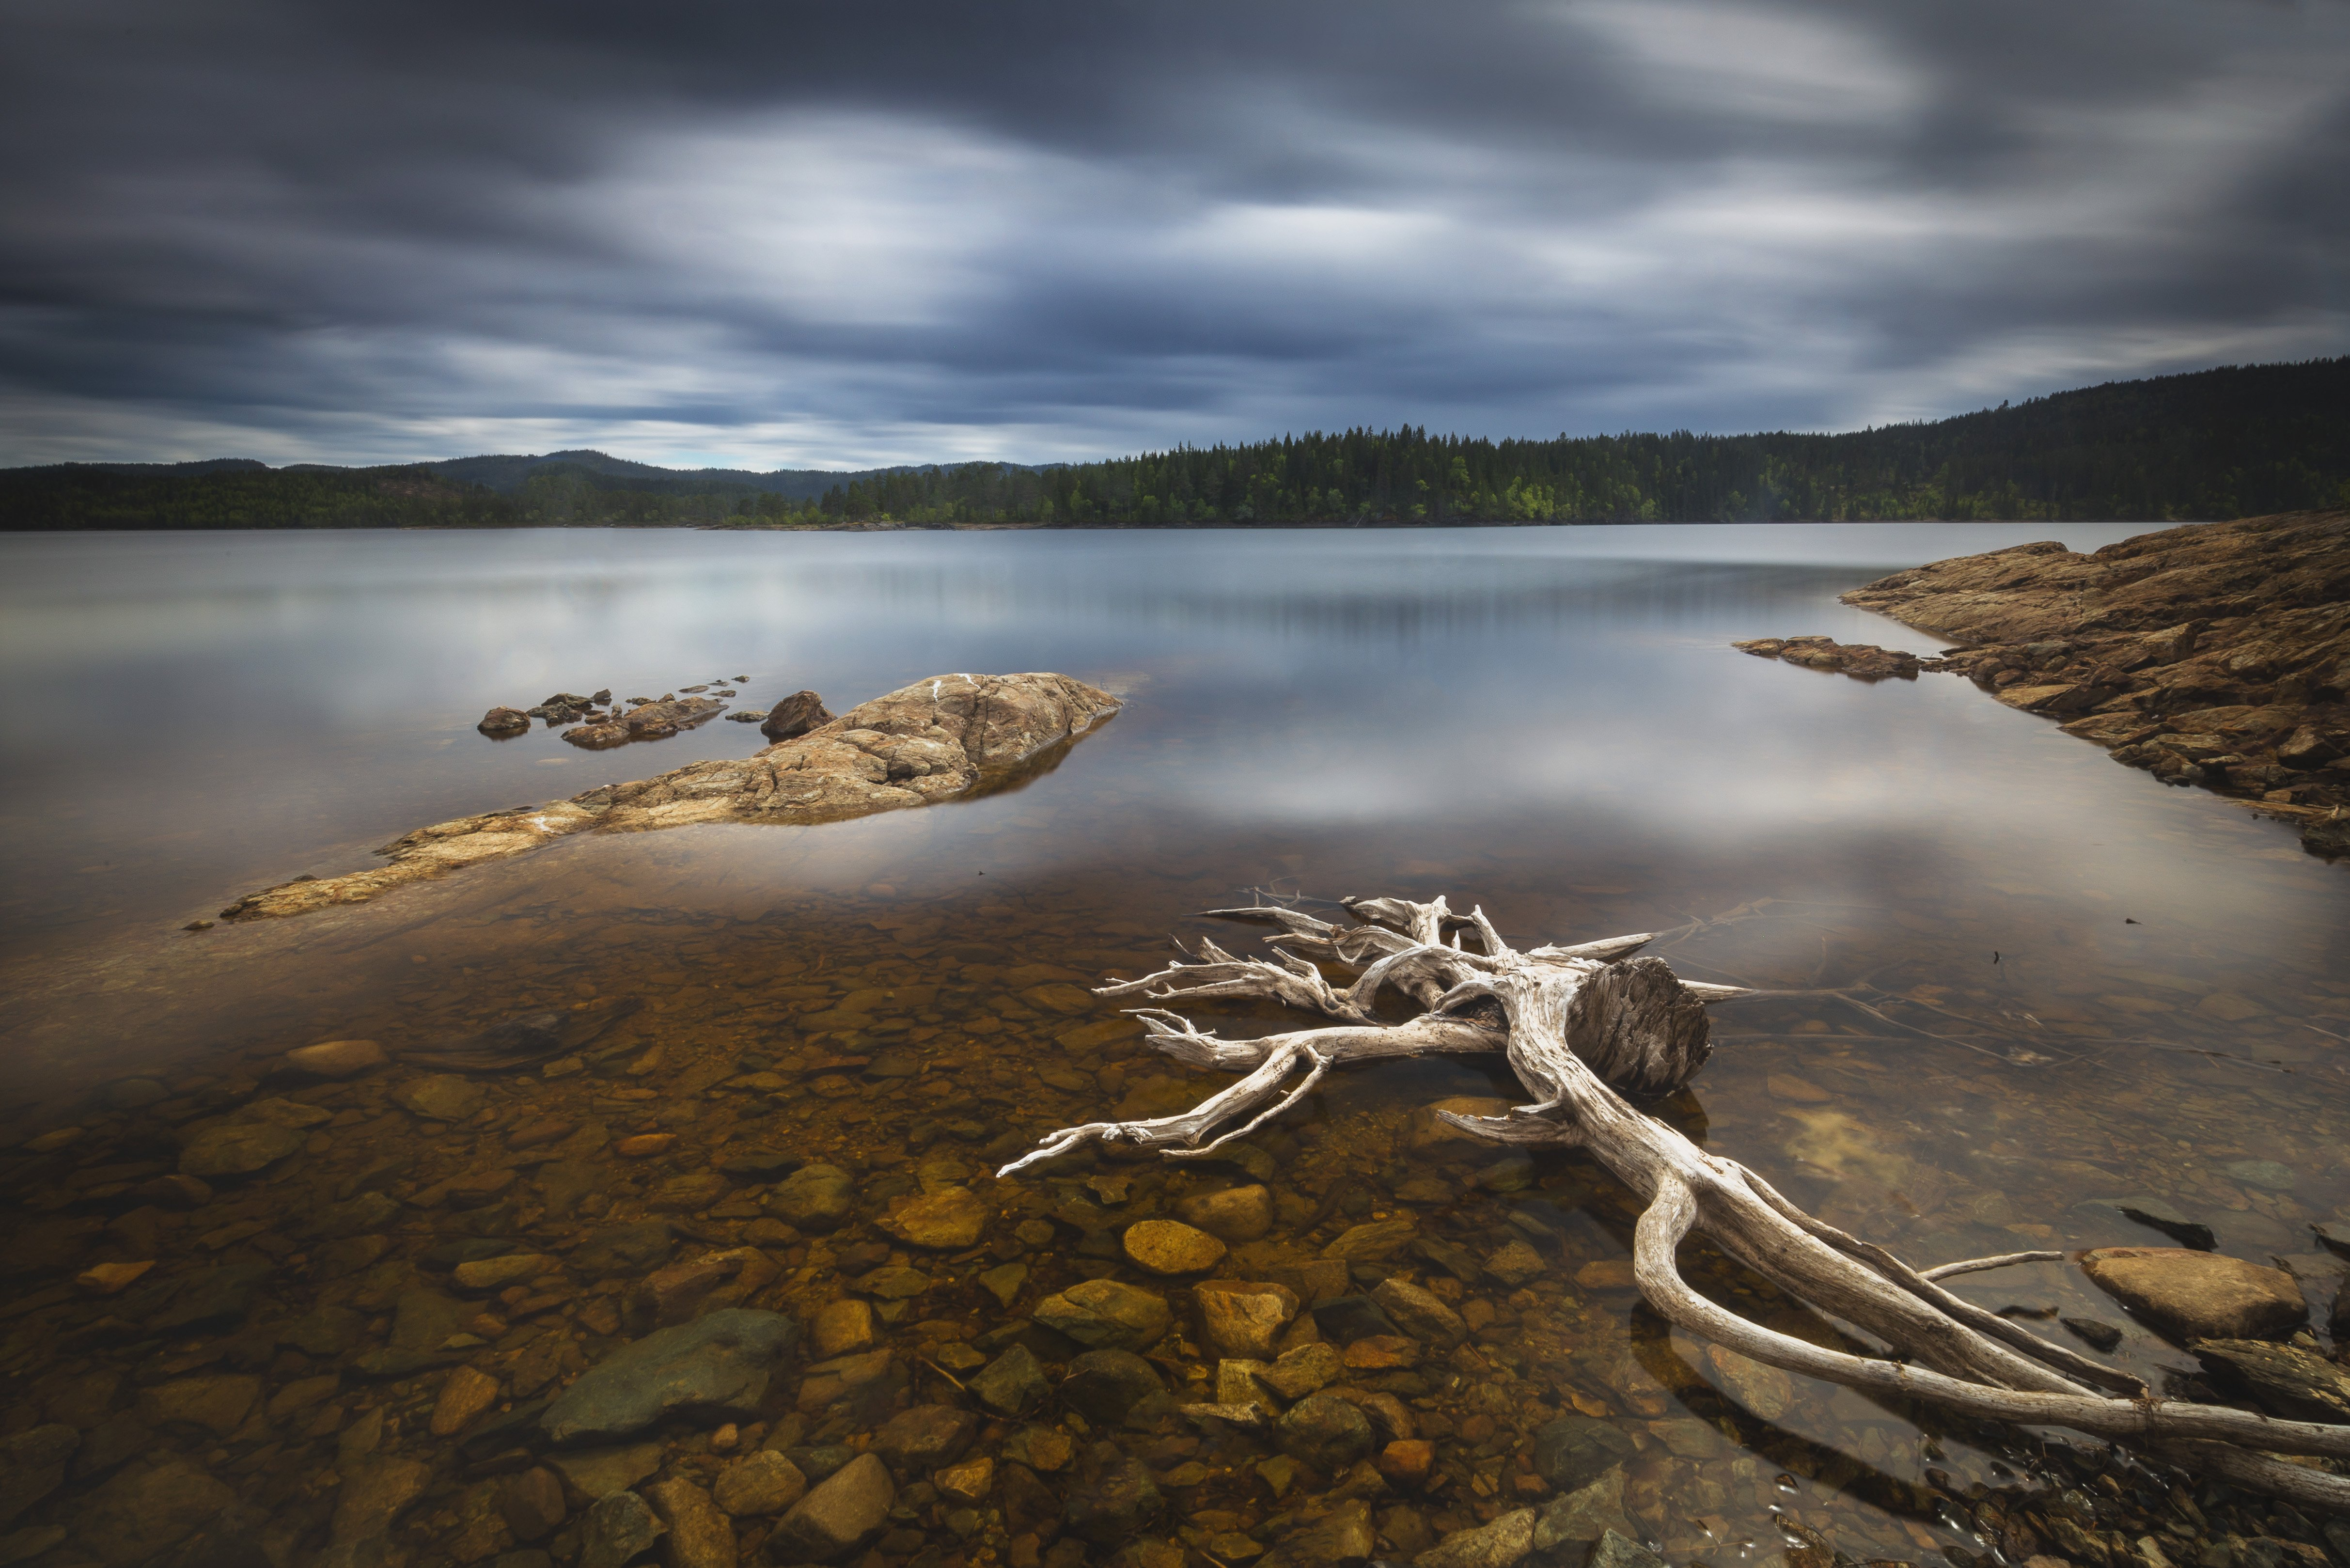 lake, landscape, lakeside, long exposure, norway, norwegian, drift wood, shore, water, reflections, light, nature, outdoor,, Adrian Szatewicz